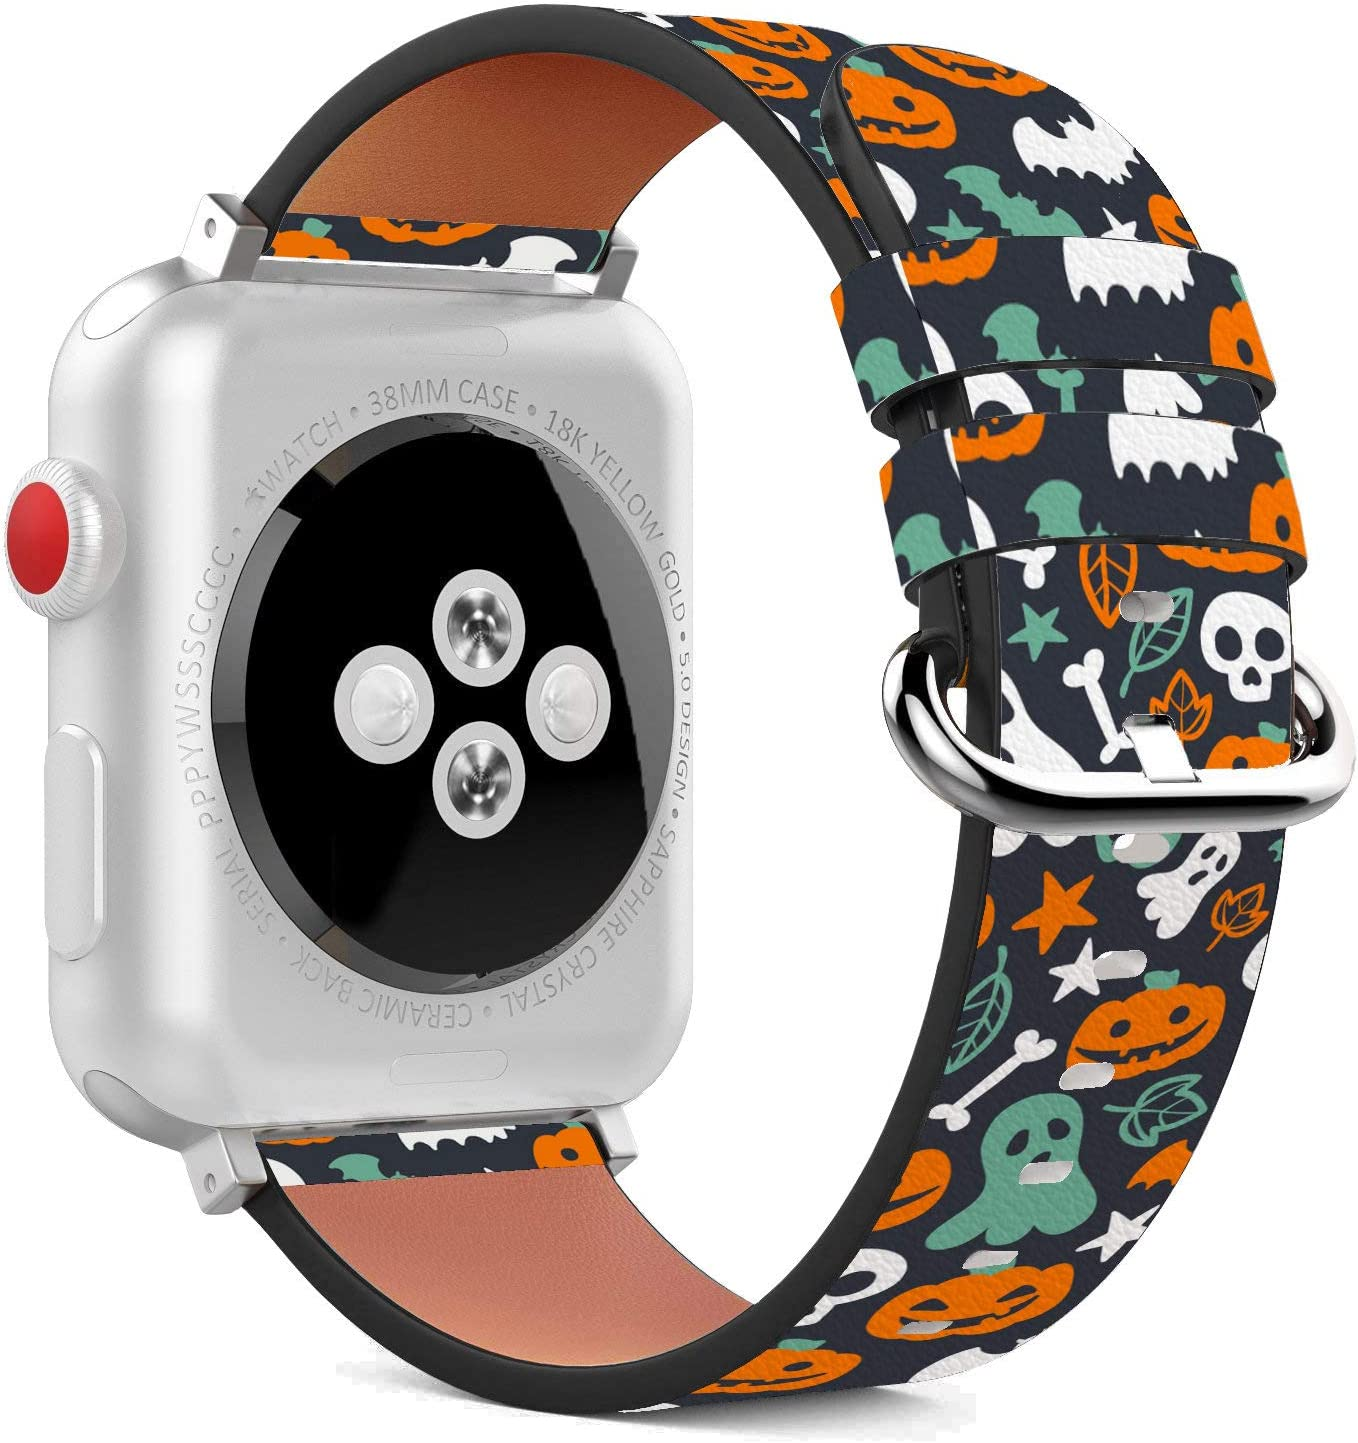 Compatible with Apple Watch - 38mm / 40mm (Serie 5,4,3,2,1) Leather Wristband Bracelet with Stainless Steel Clasp and Adapters - Cute Halloween